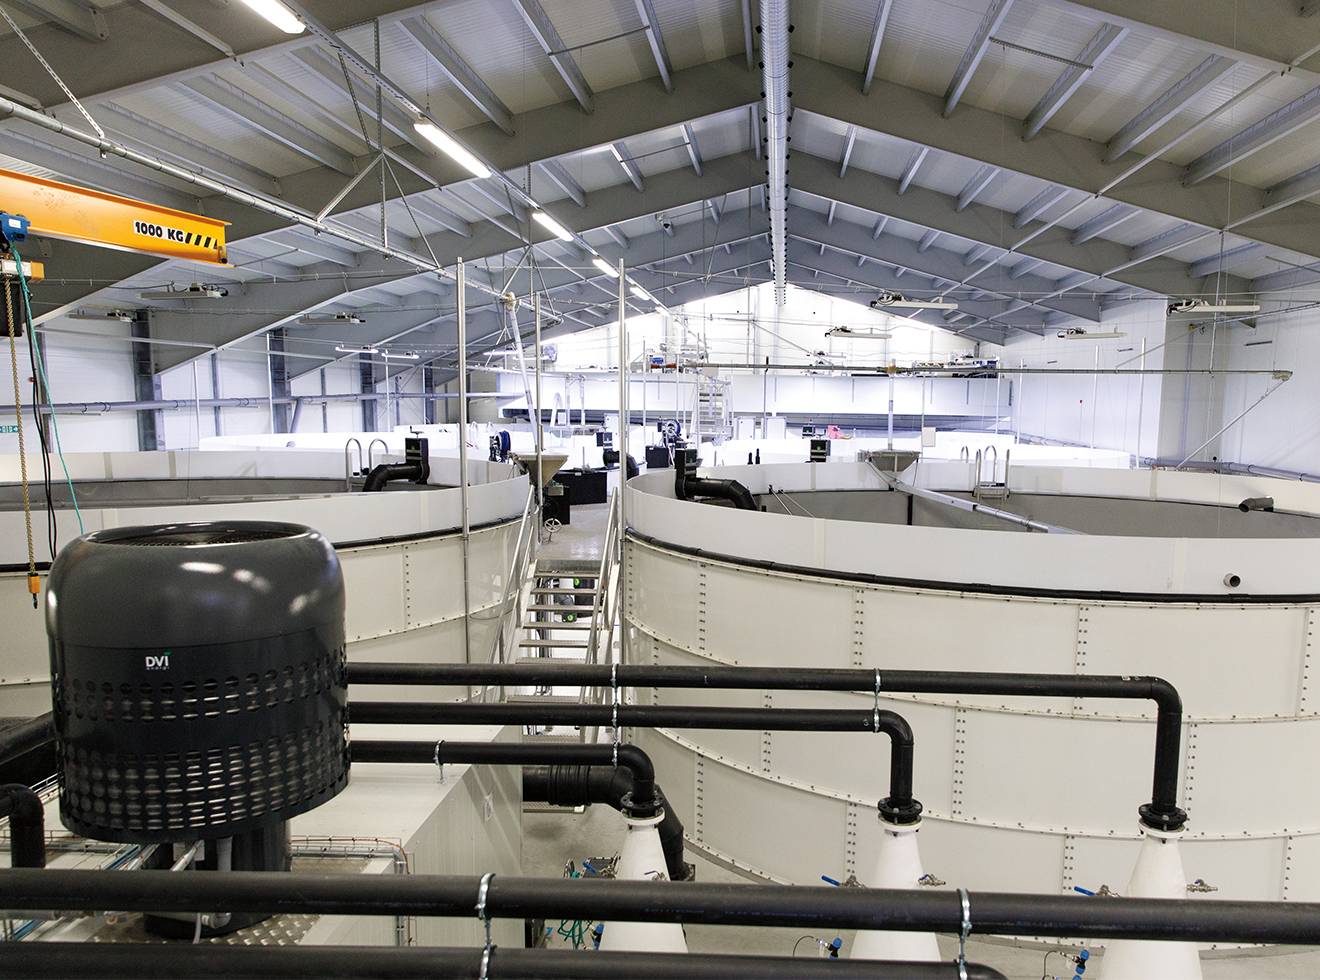 A typical salmon farming facility in Norway